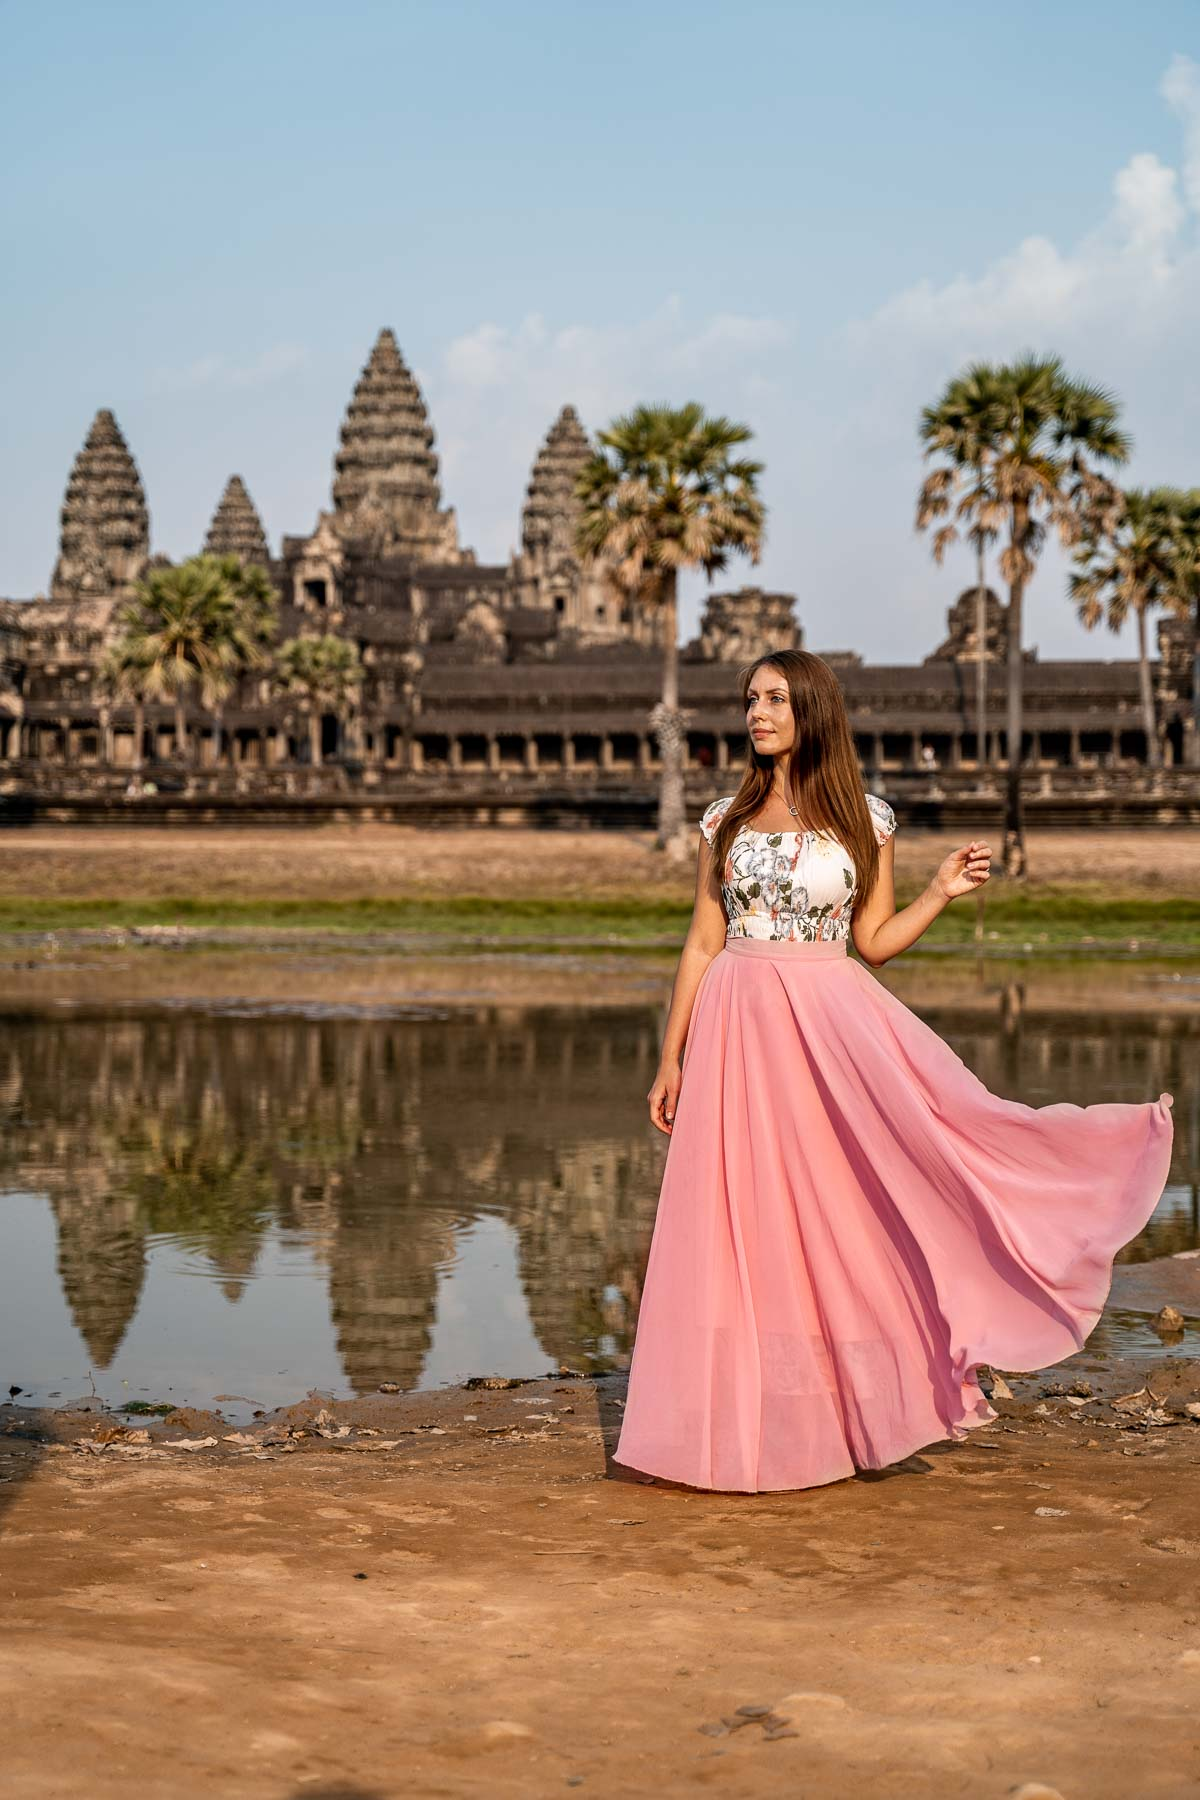 Girl in a pink skirt standing in front of the Angkor Wat in Cambodia